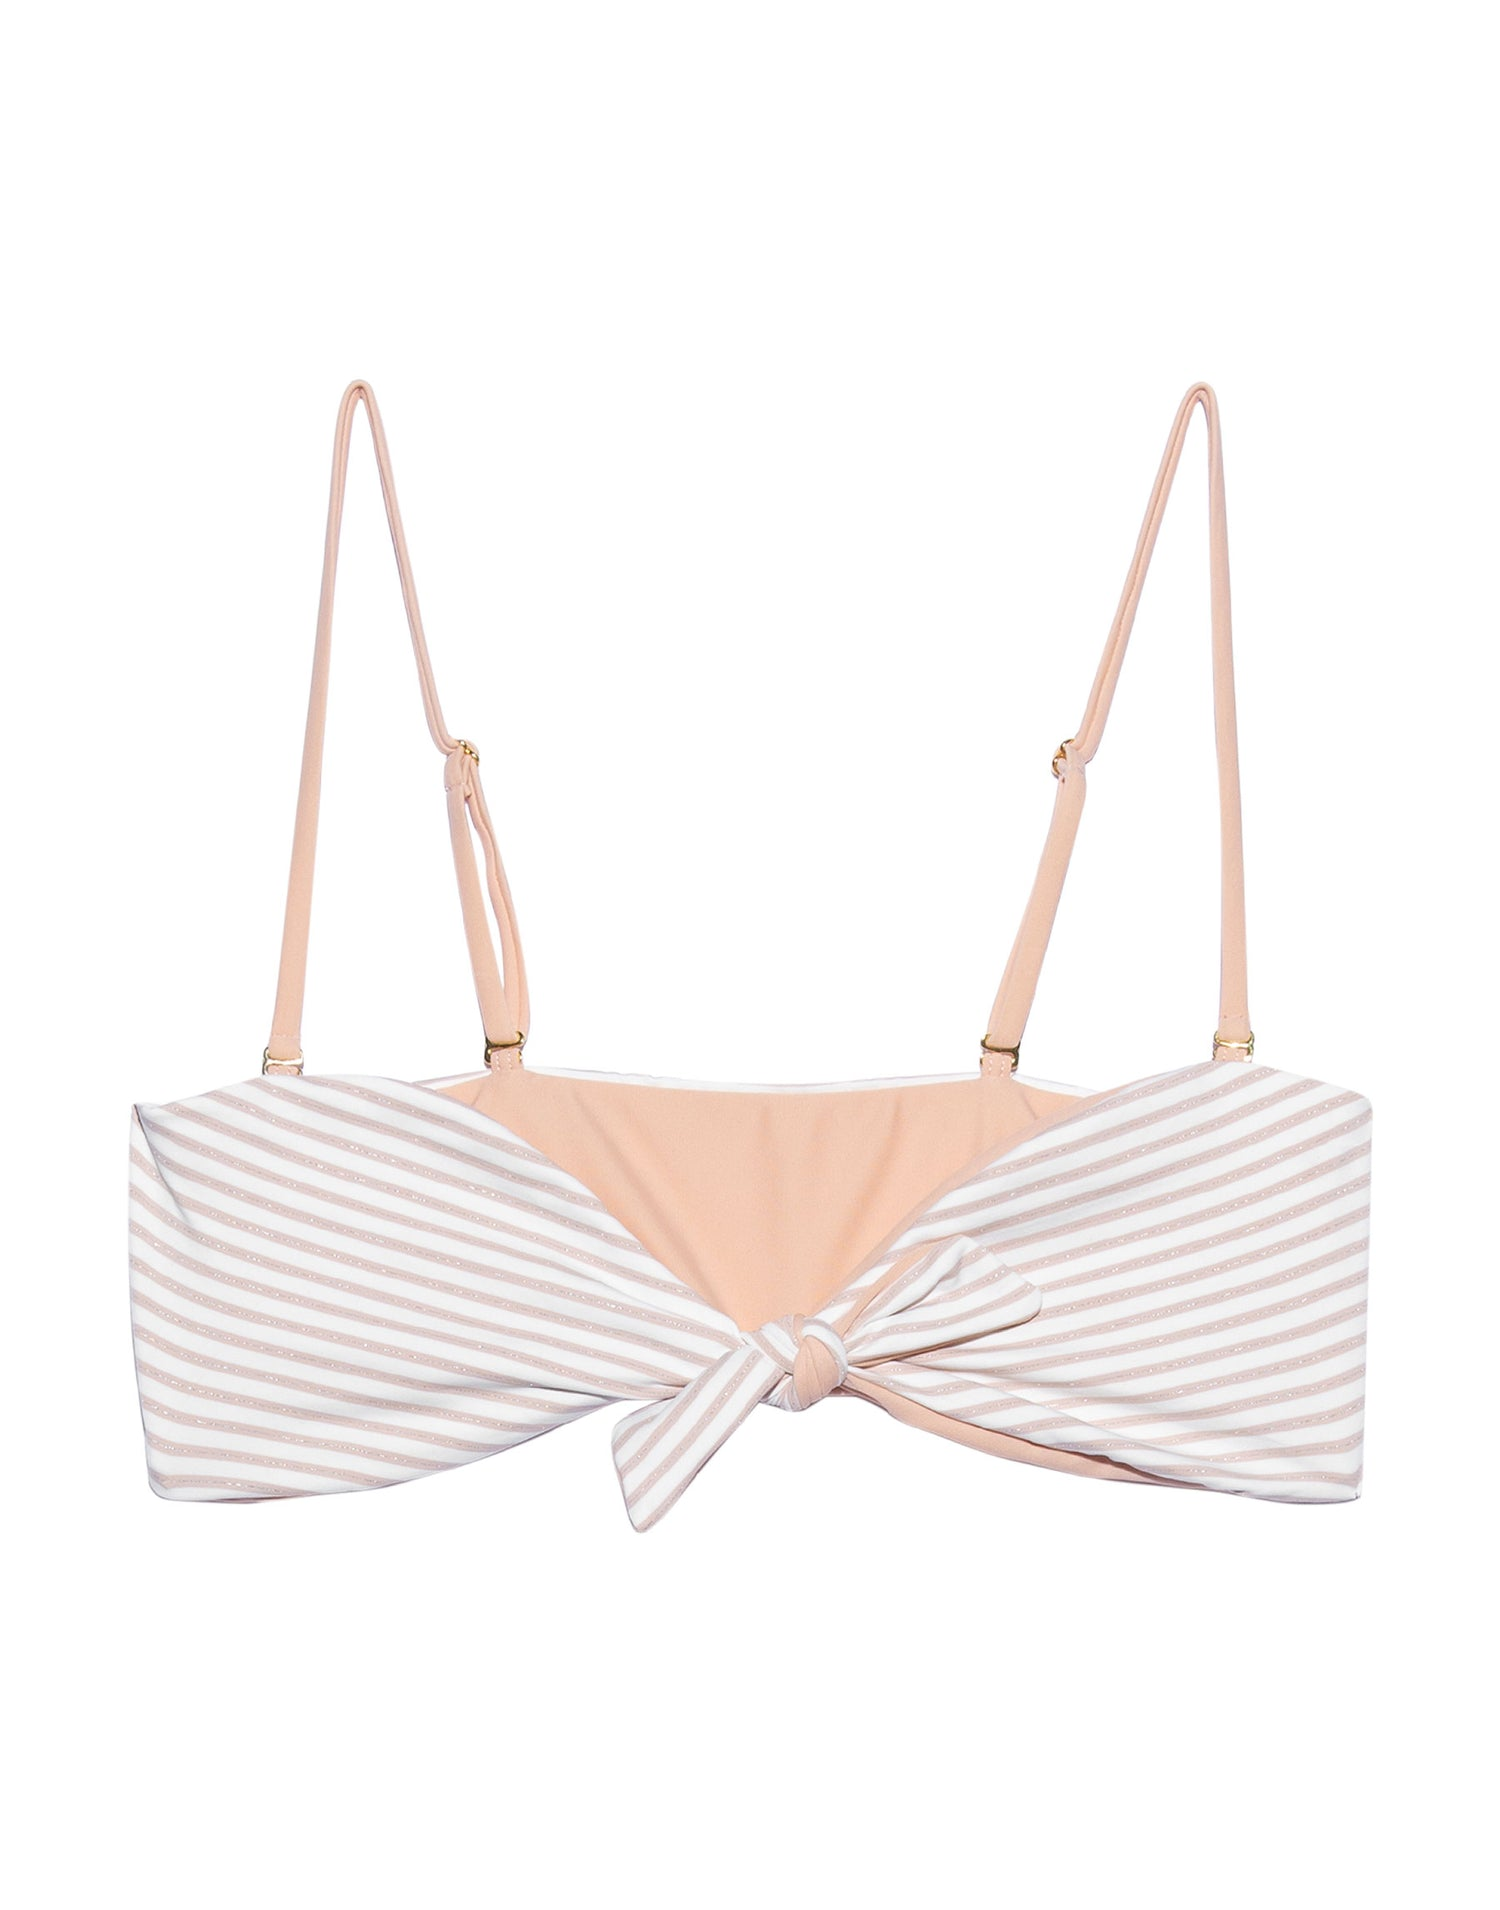 Layla Bandeau Bikini Top in Blush Stripe - Product View